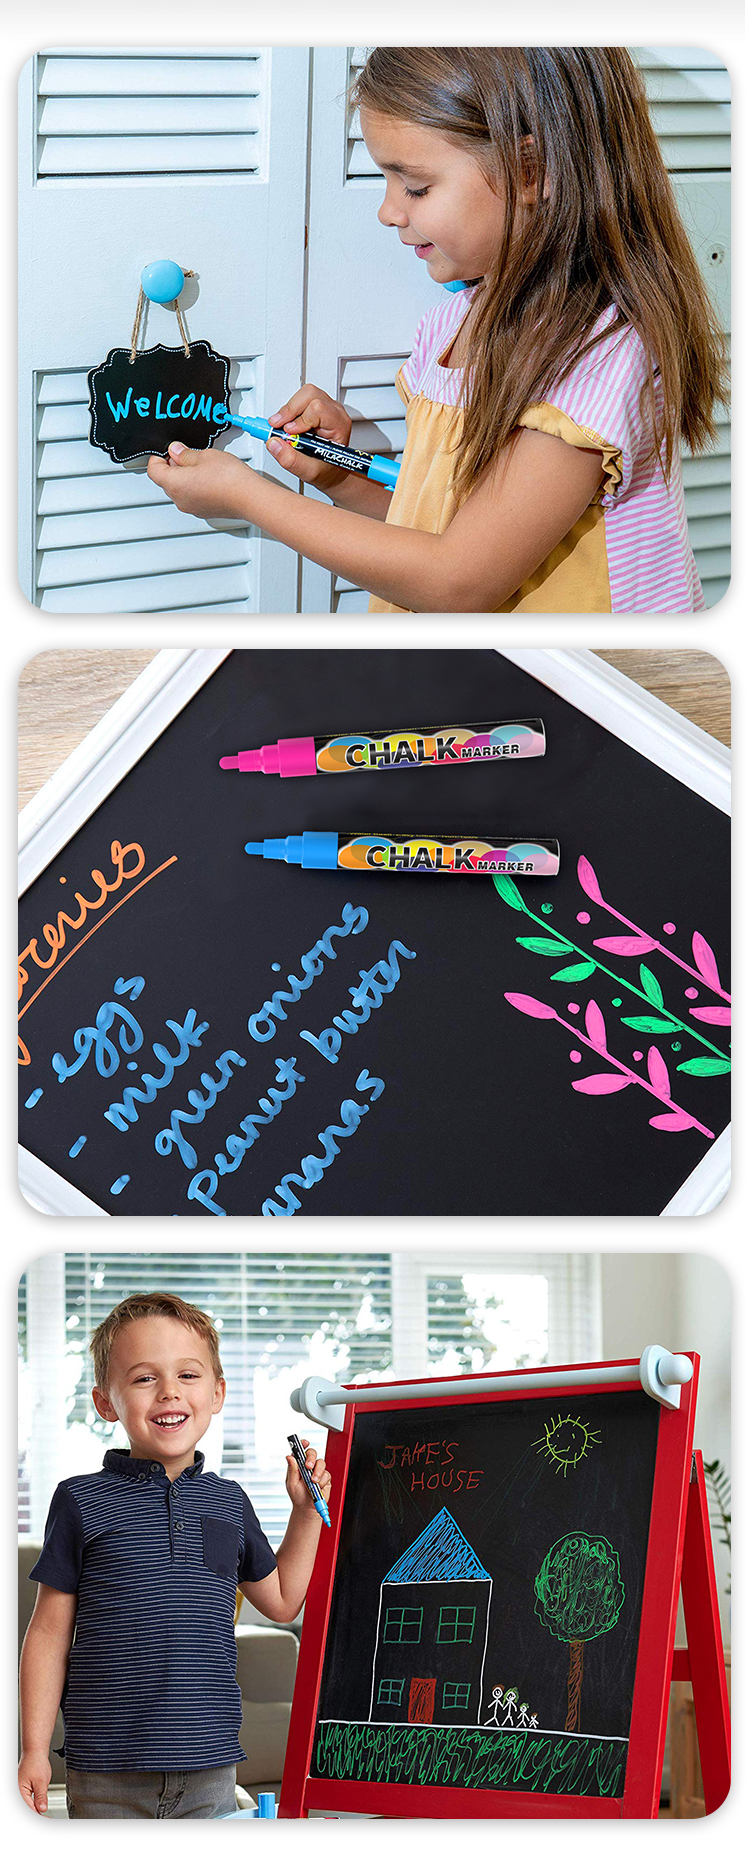 Chalkboard washable Chalk Markers-8-20 Colors/6mm reversible tips white chalk marker pen set